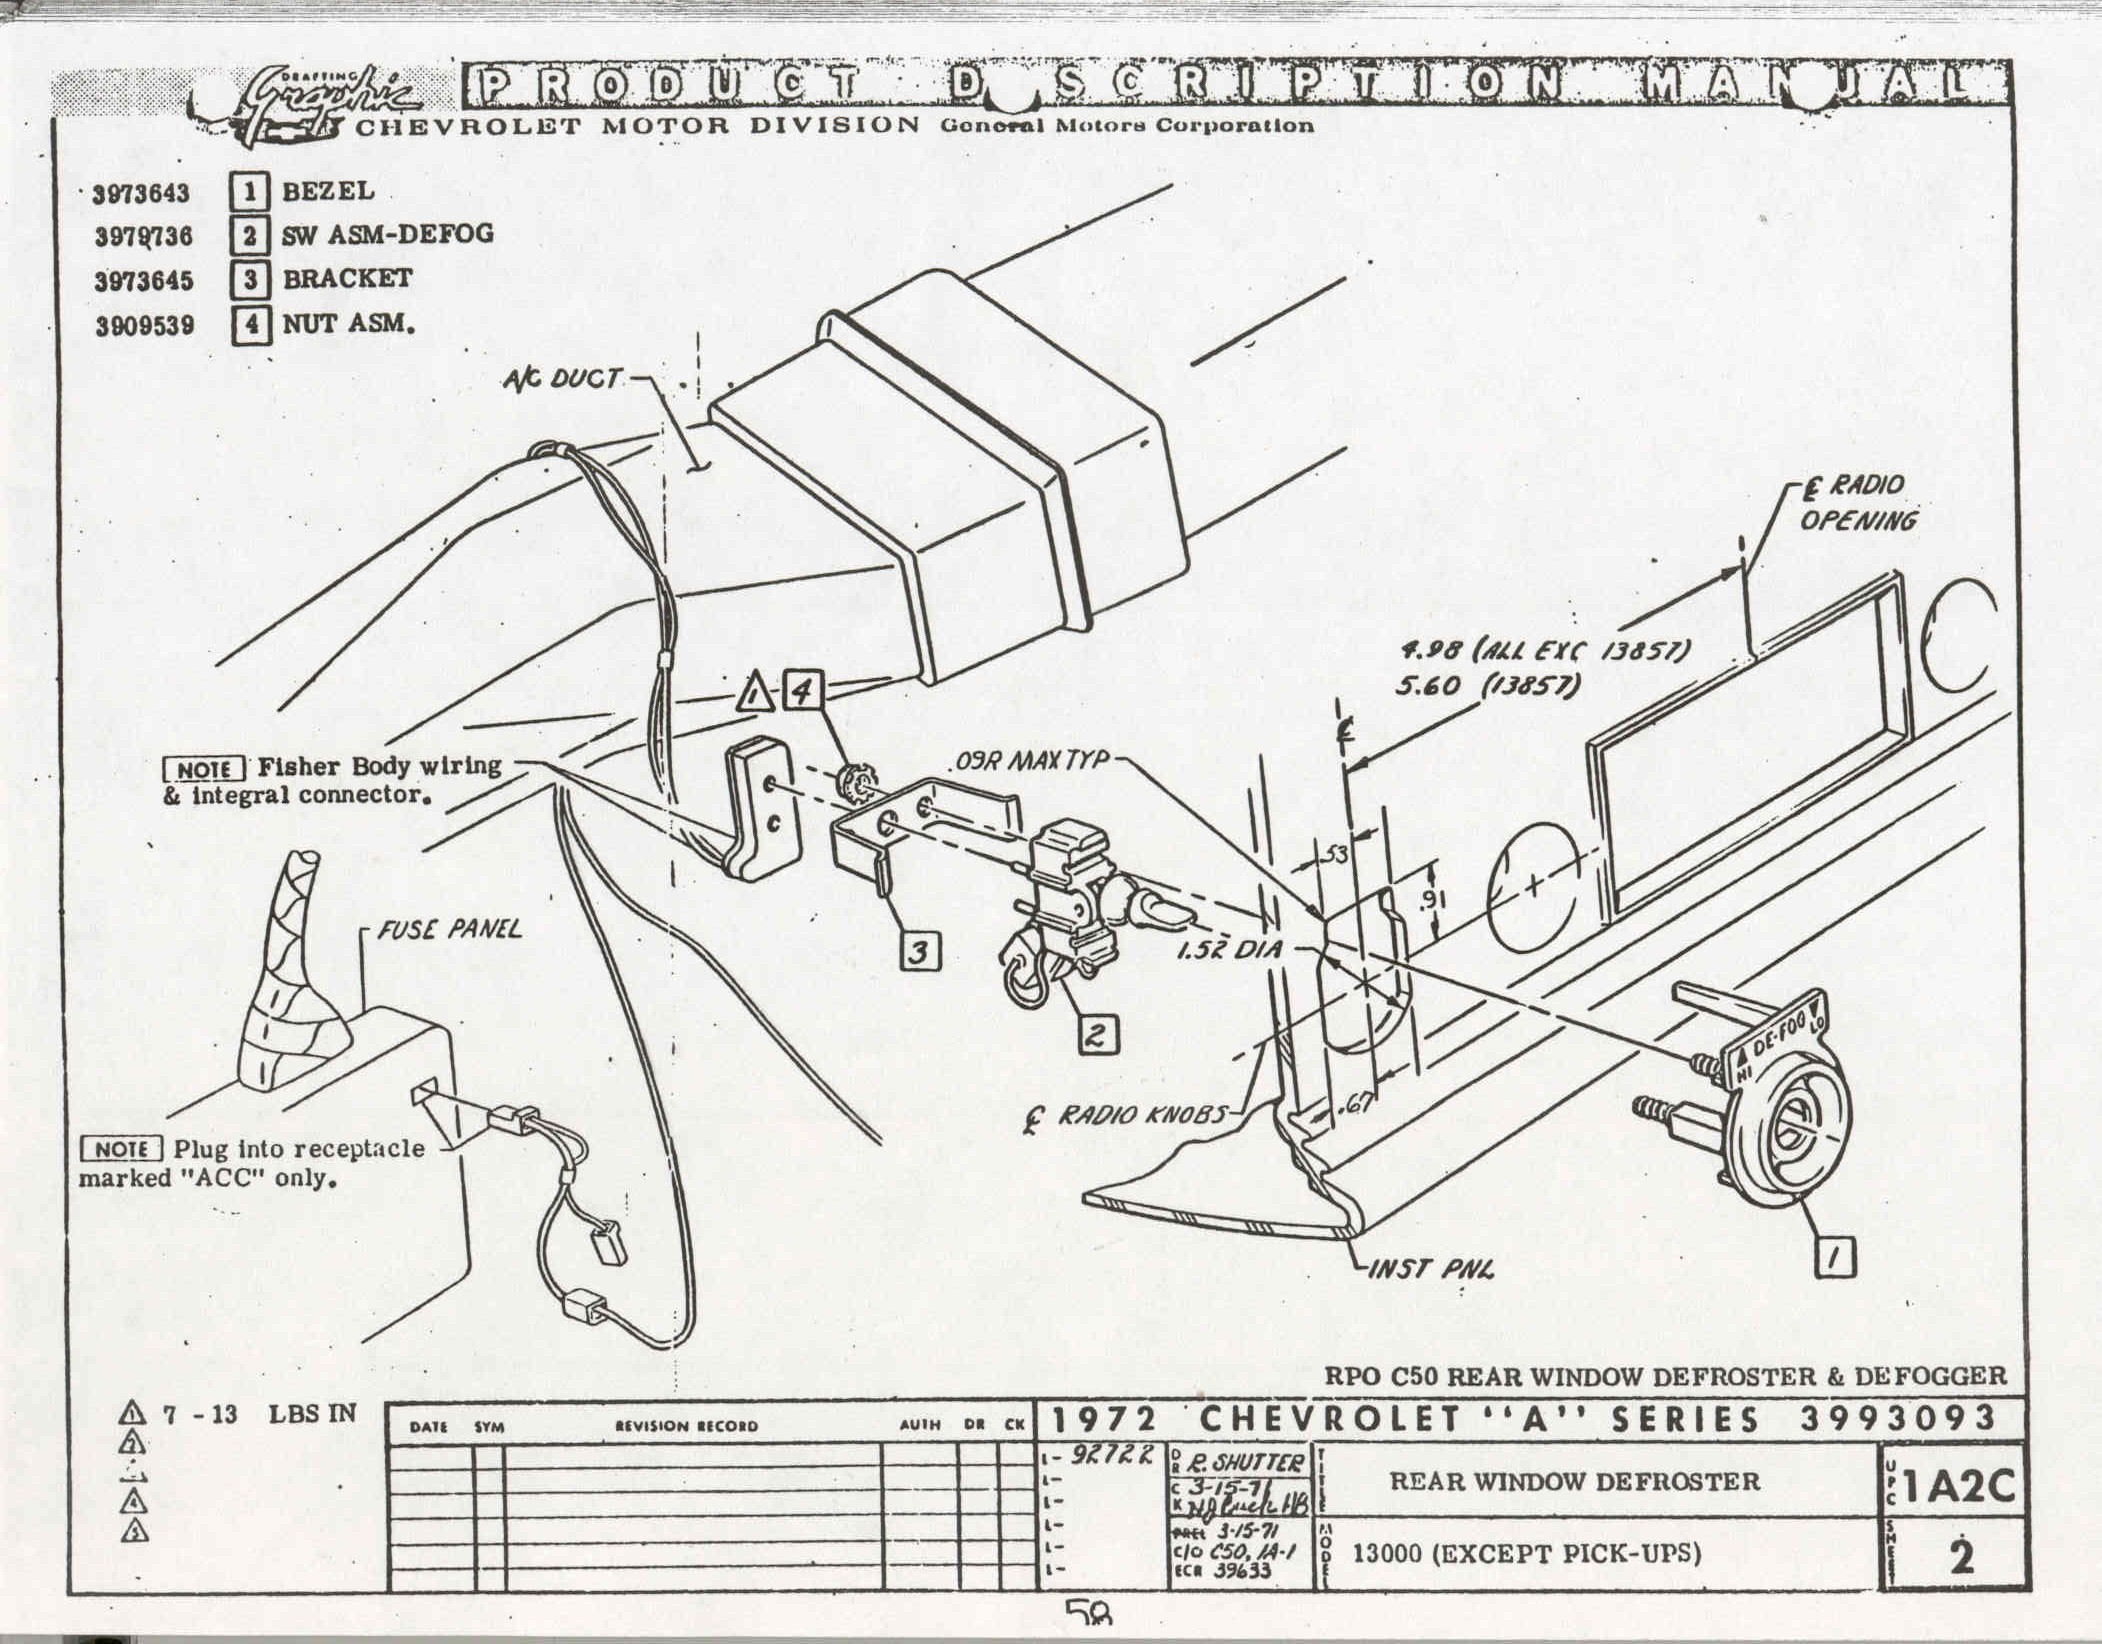 71 Chevy Chevelle Horn Wiring Diagram Great Design Of 1968 Wiper Motor 1969 Camaro Heater Duct Free Engine Image Harness 1967